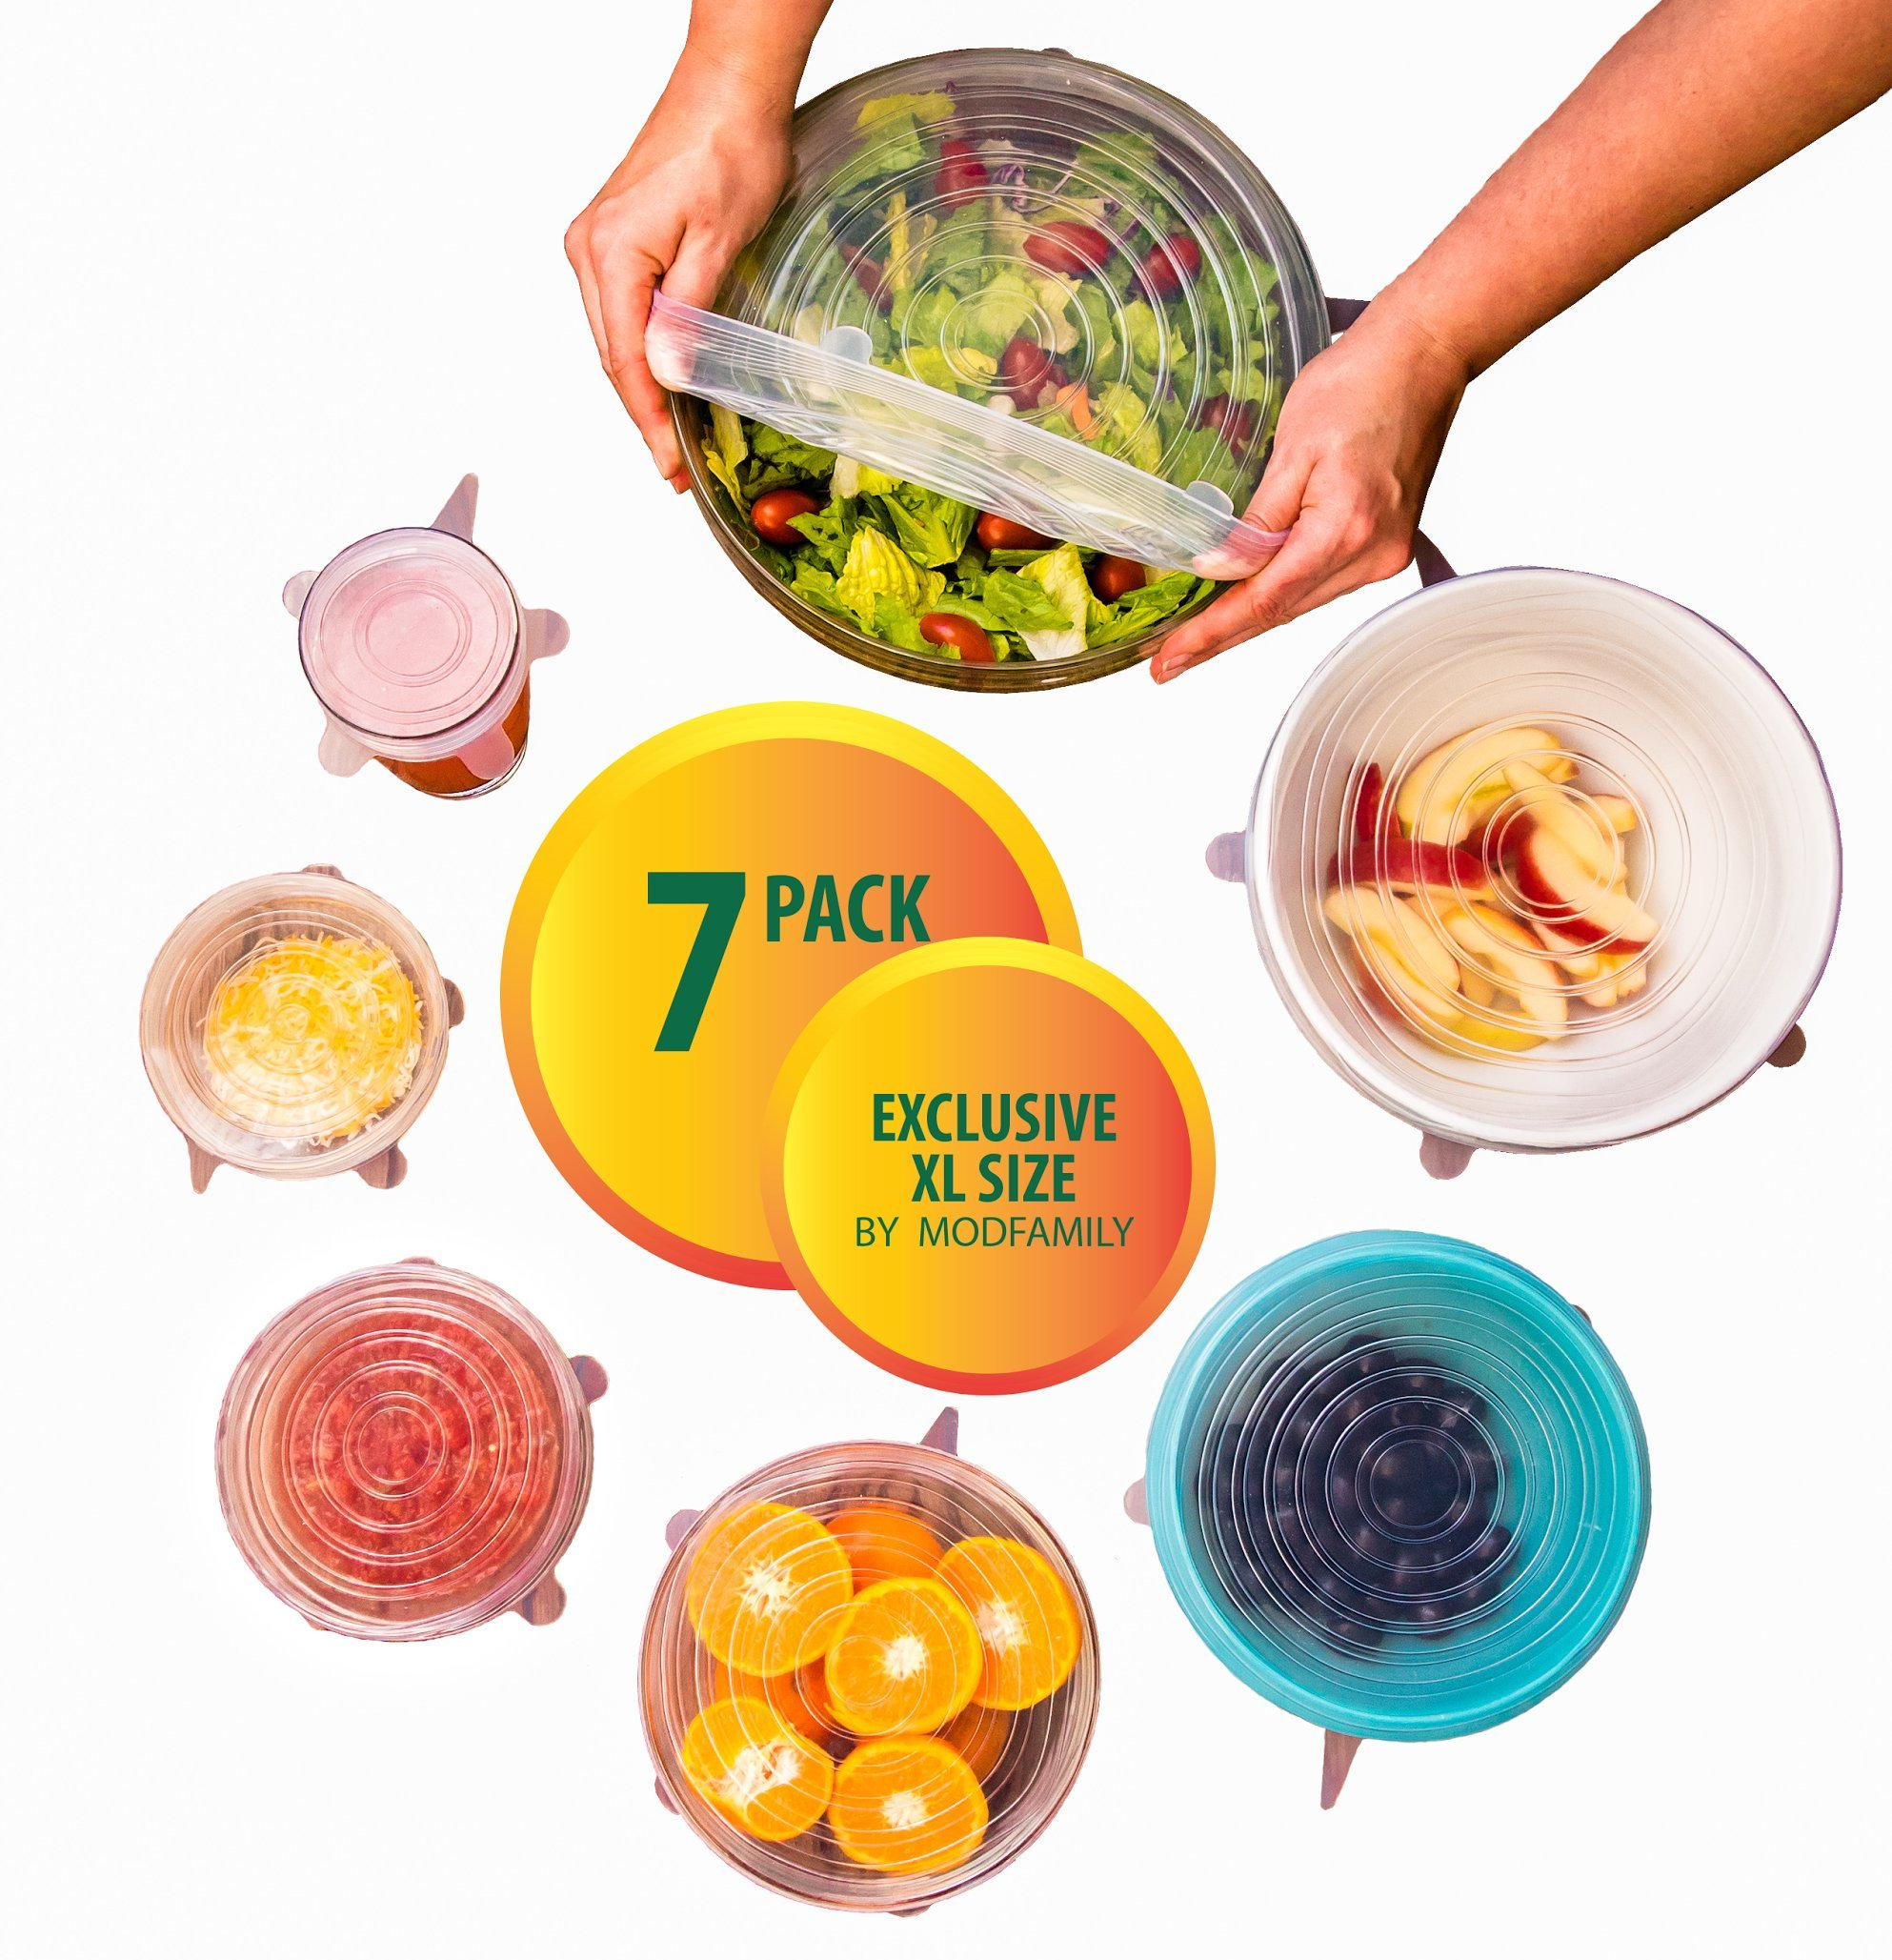 Silicone Stretch Lids (7 pack, includes EXCLUSIVE XL SIZE), Reusable, Durable and Expandable to Fit Various Sizes and Shapes of Containers. Superior for Keeping Food Fresh, Dishwasher and Freezer Safe by ModFamily